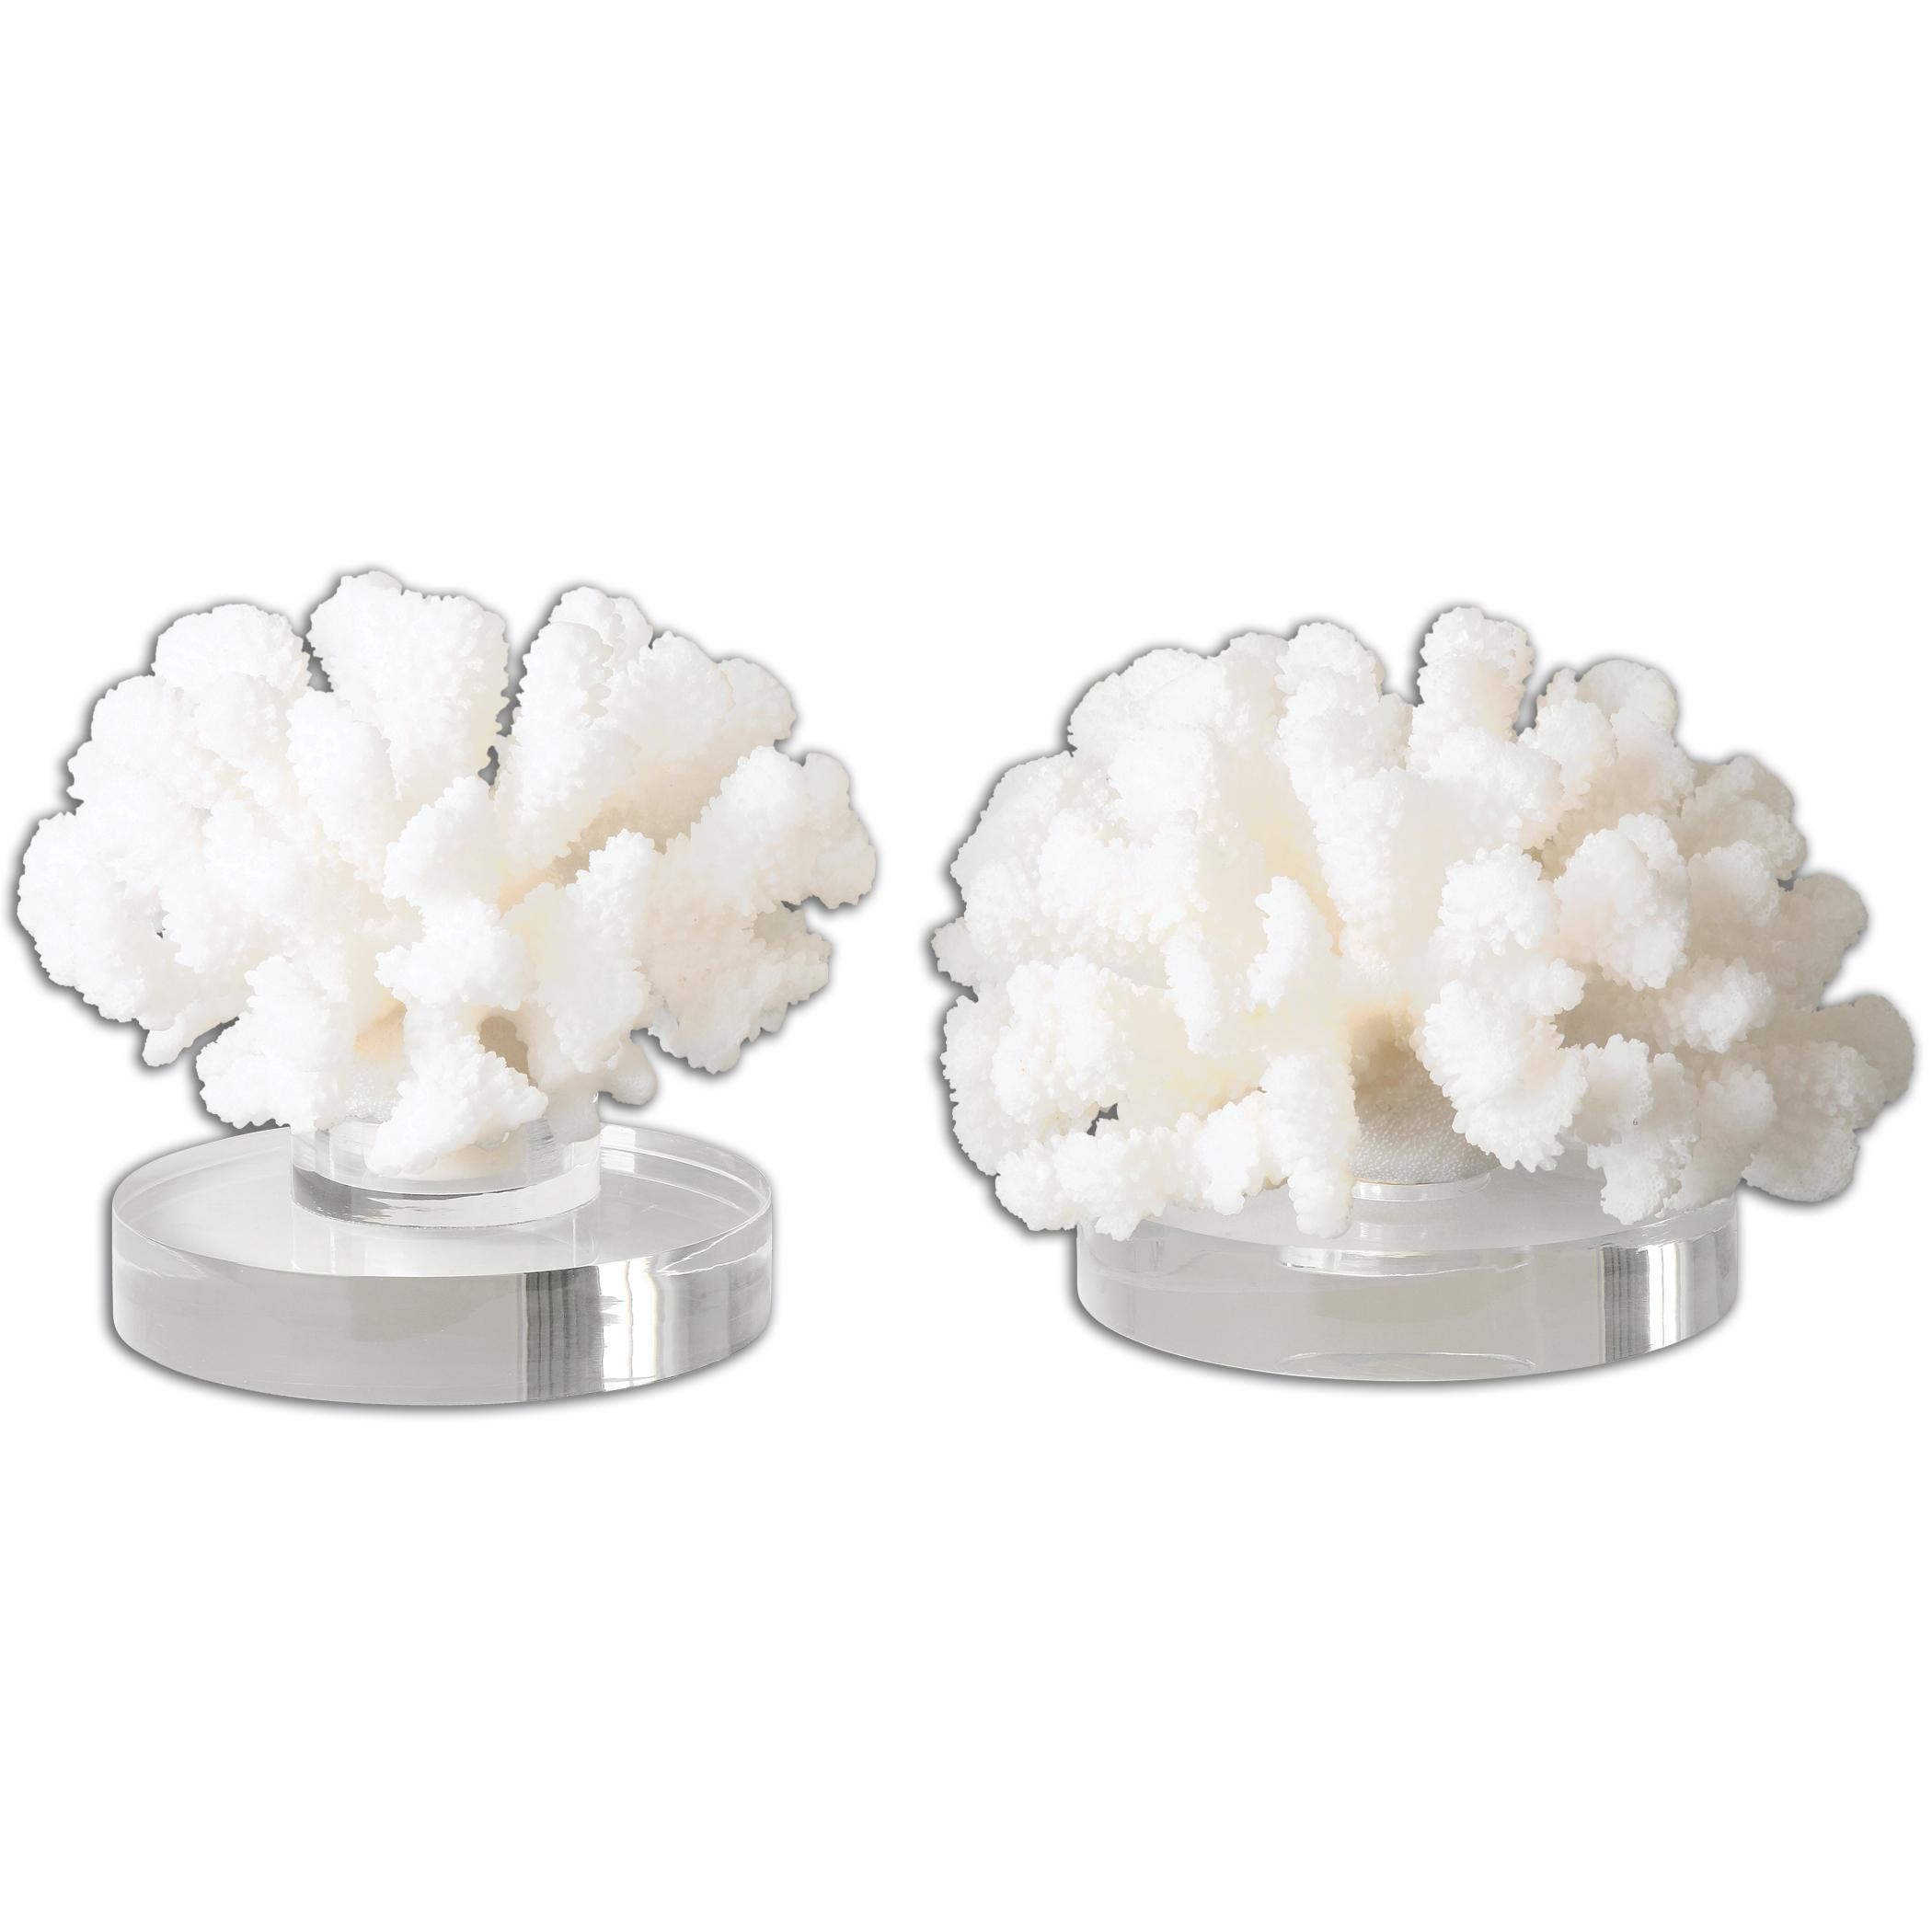 Uttermost Accessories Hard Coral Sculptures, Set of 2 - Item Number: 19910